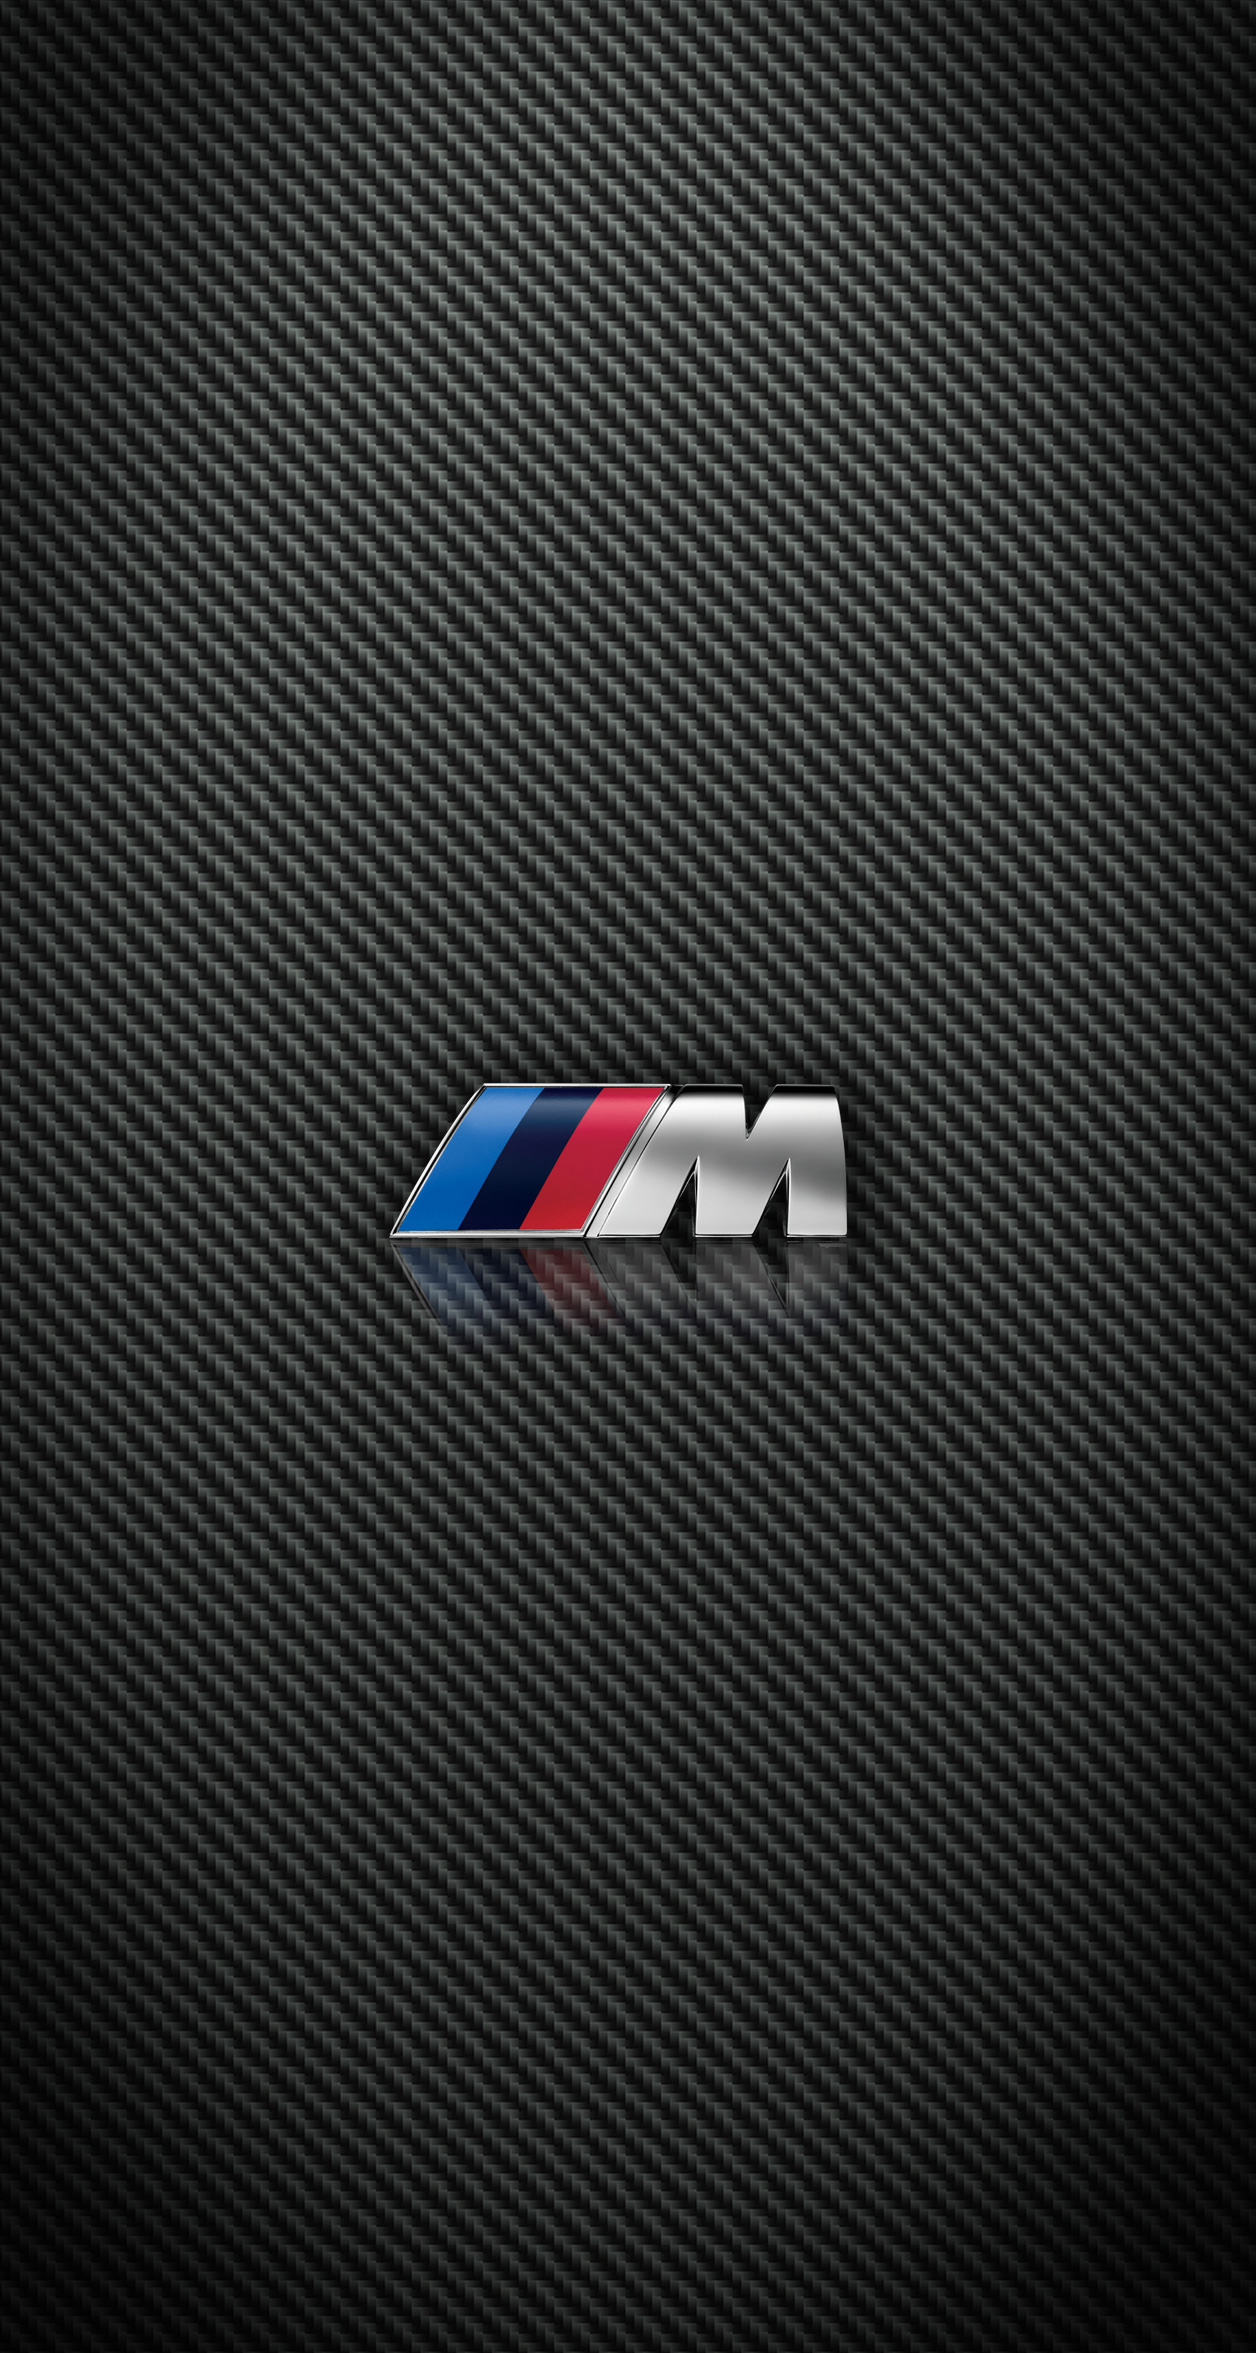 Wallpapers Oakley 3d Carbon Fiber Bmw And M Power Iphone Wallpapers For Iphone